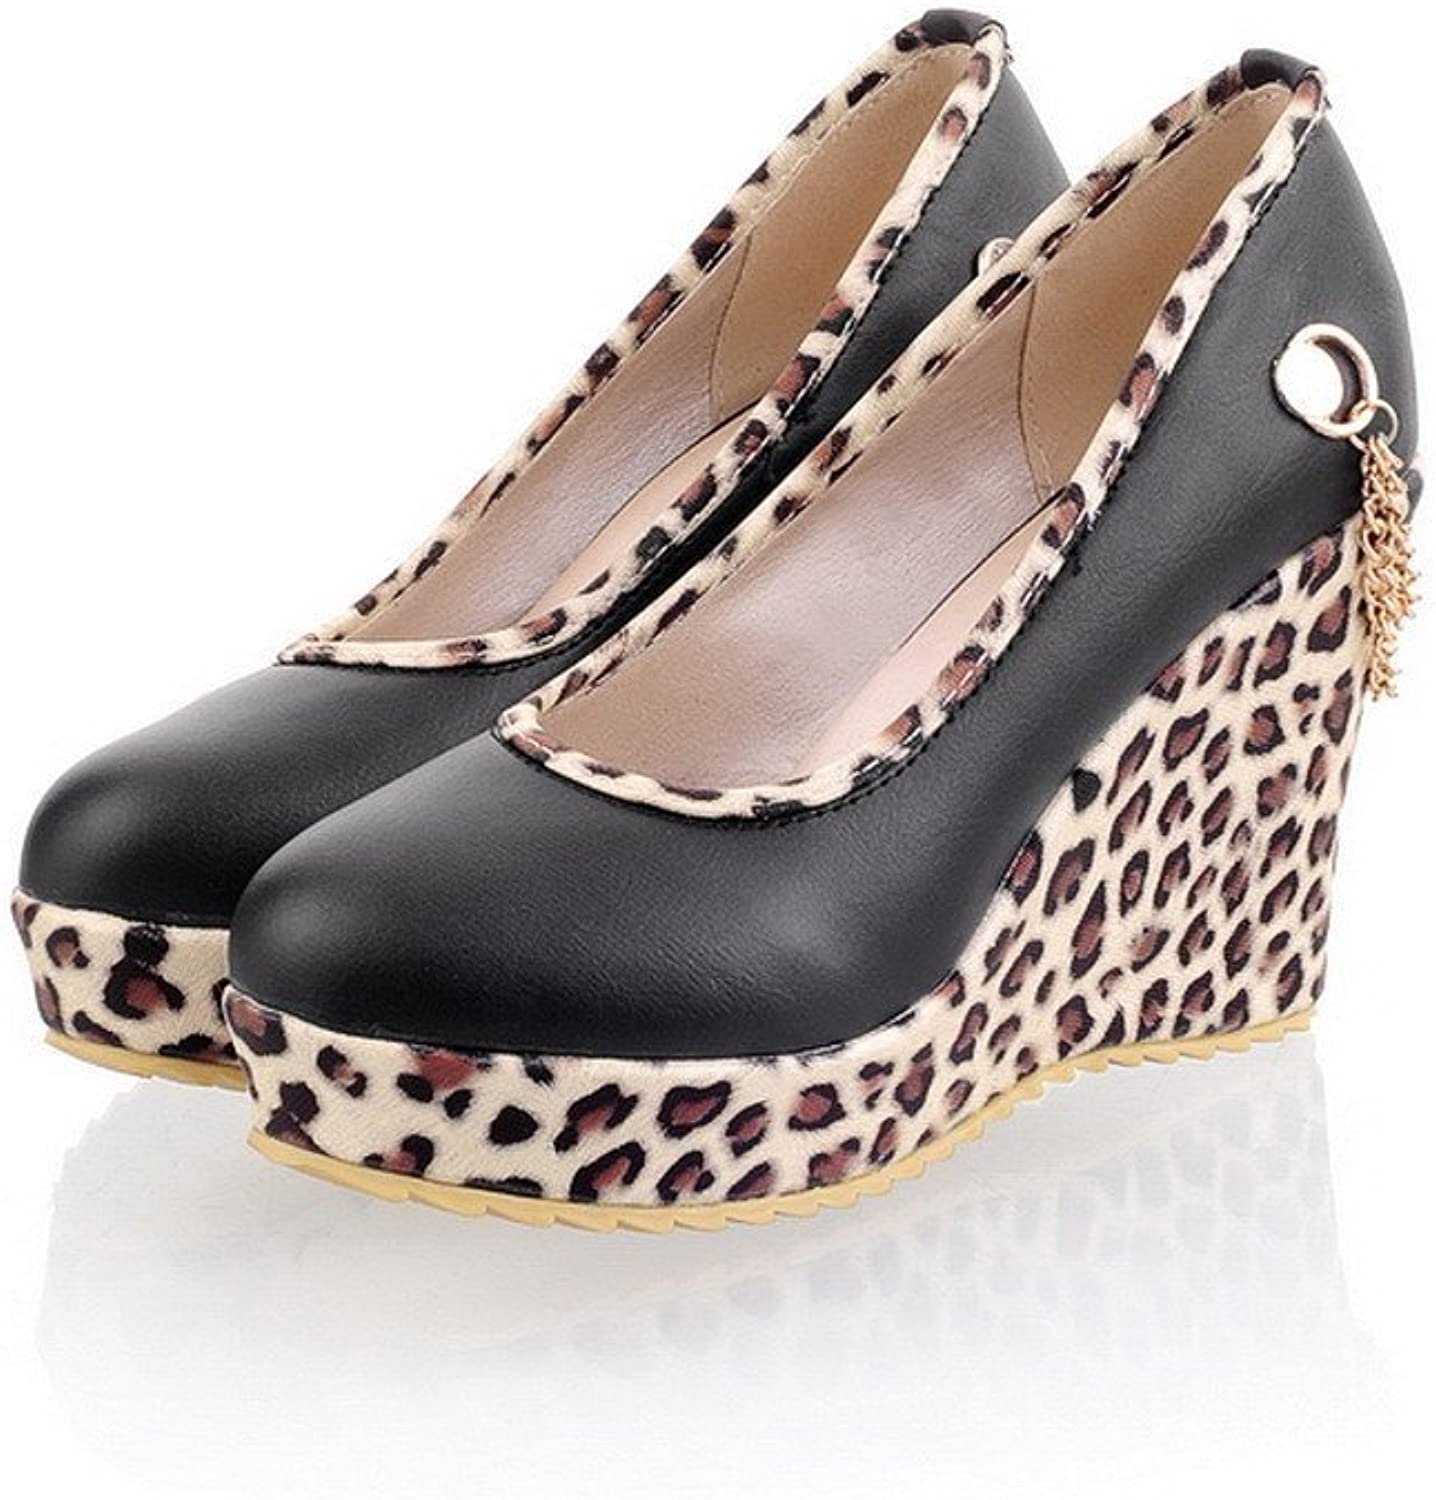 Lucksender Womens Fashion Closed Round Toe High Heel Wedge Soft Material PU Leopard Pumps with Metal Chain